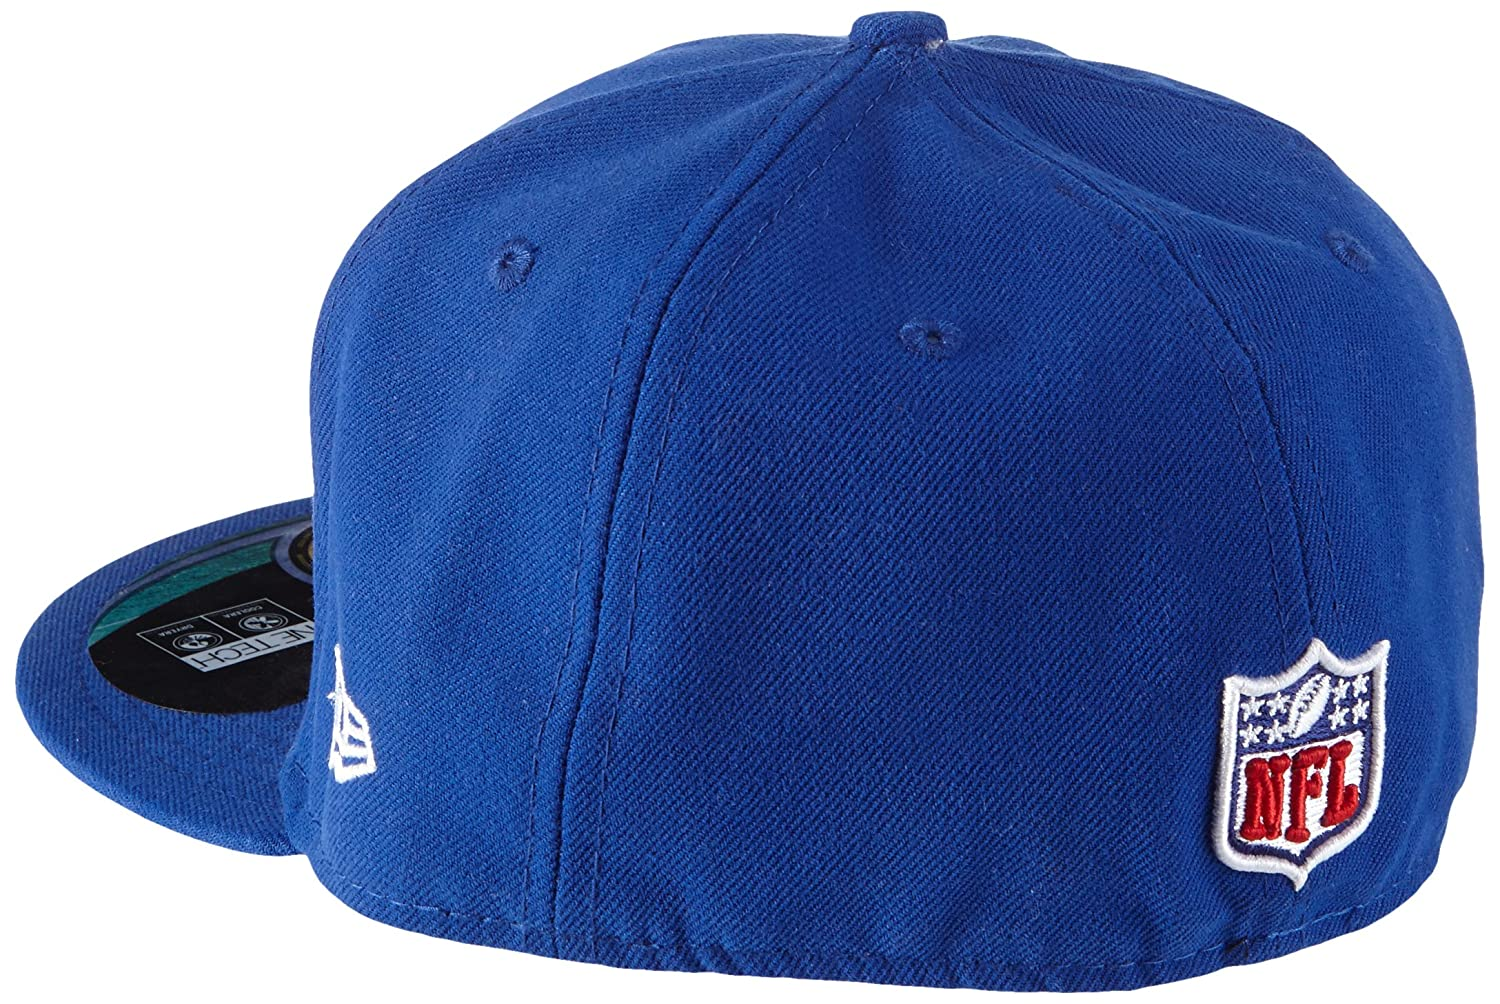 55e7653d NFL Mens New York Giants On Field 5950 Royal Blue Game Cap By New Era